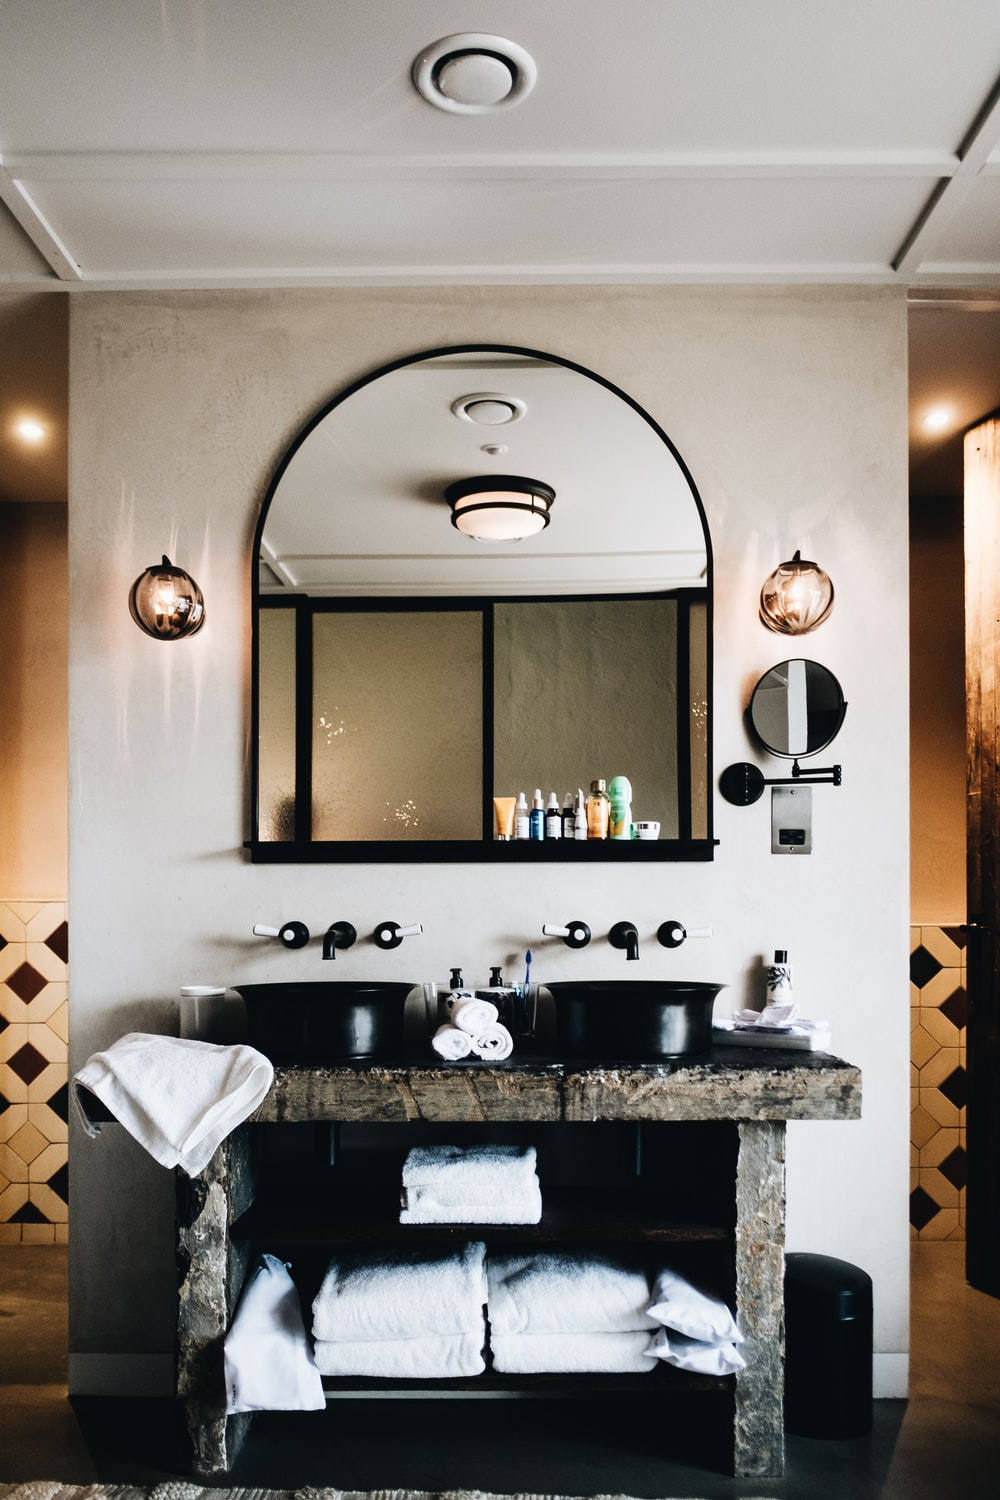 white towel on black and white marble sink